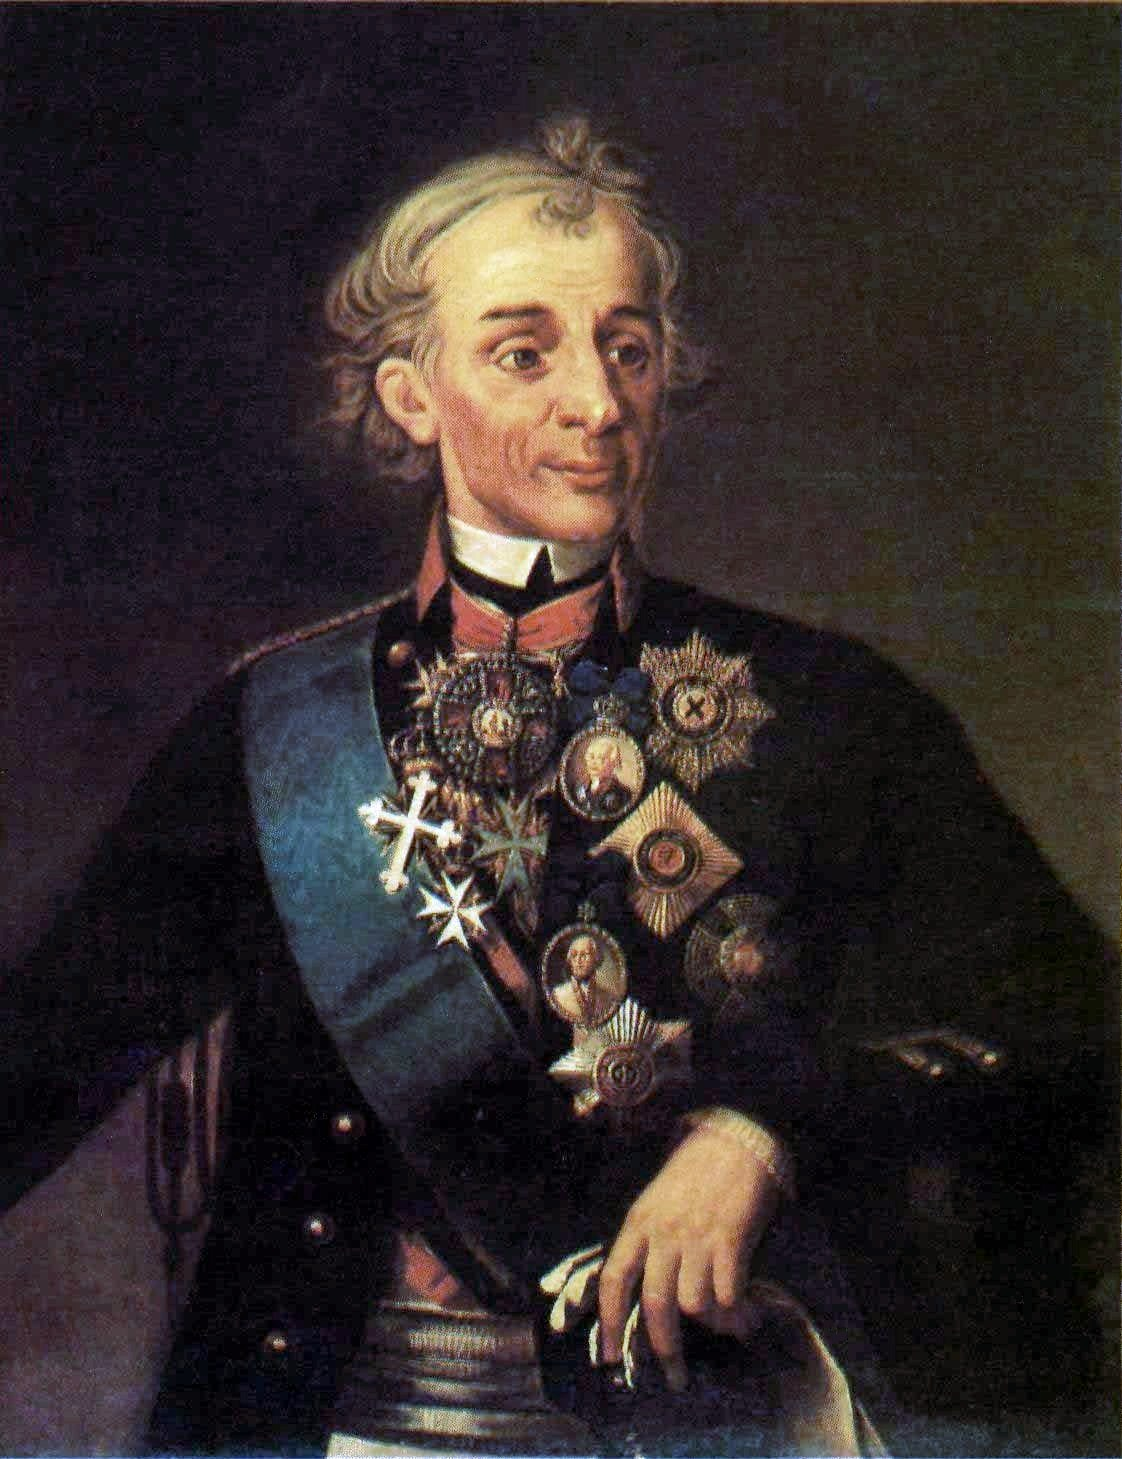 https://upload.wikimedia.org/wikipedia/commons/c/c5/Suvorov_Alex_V.jpg